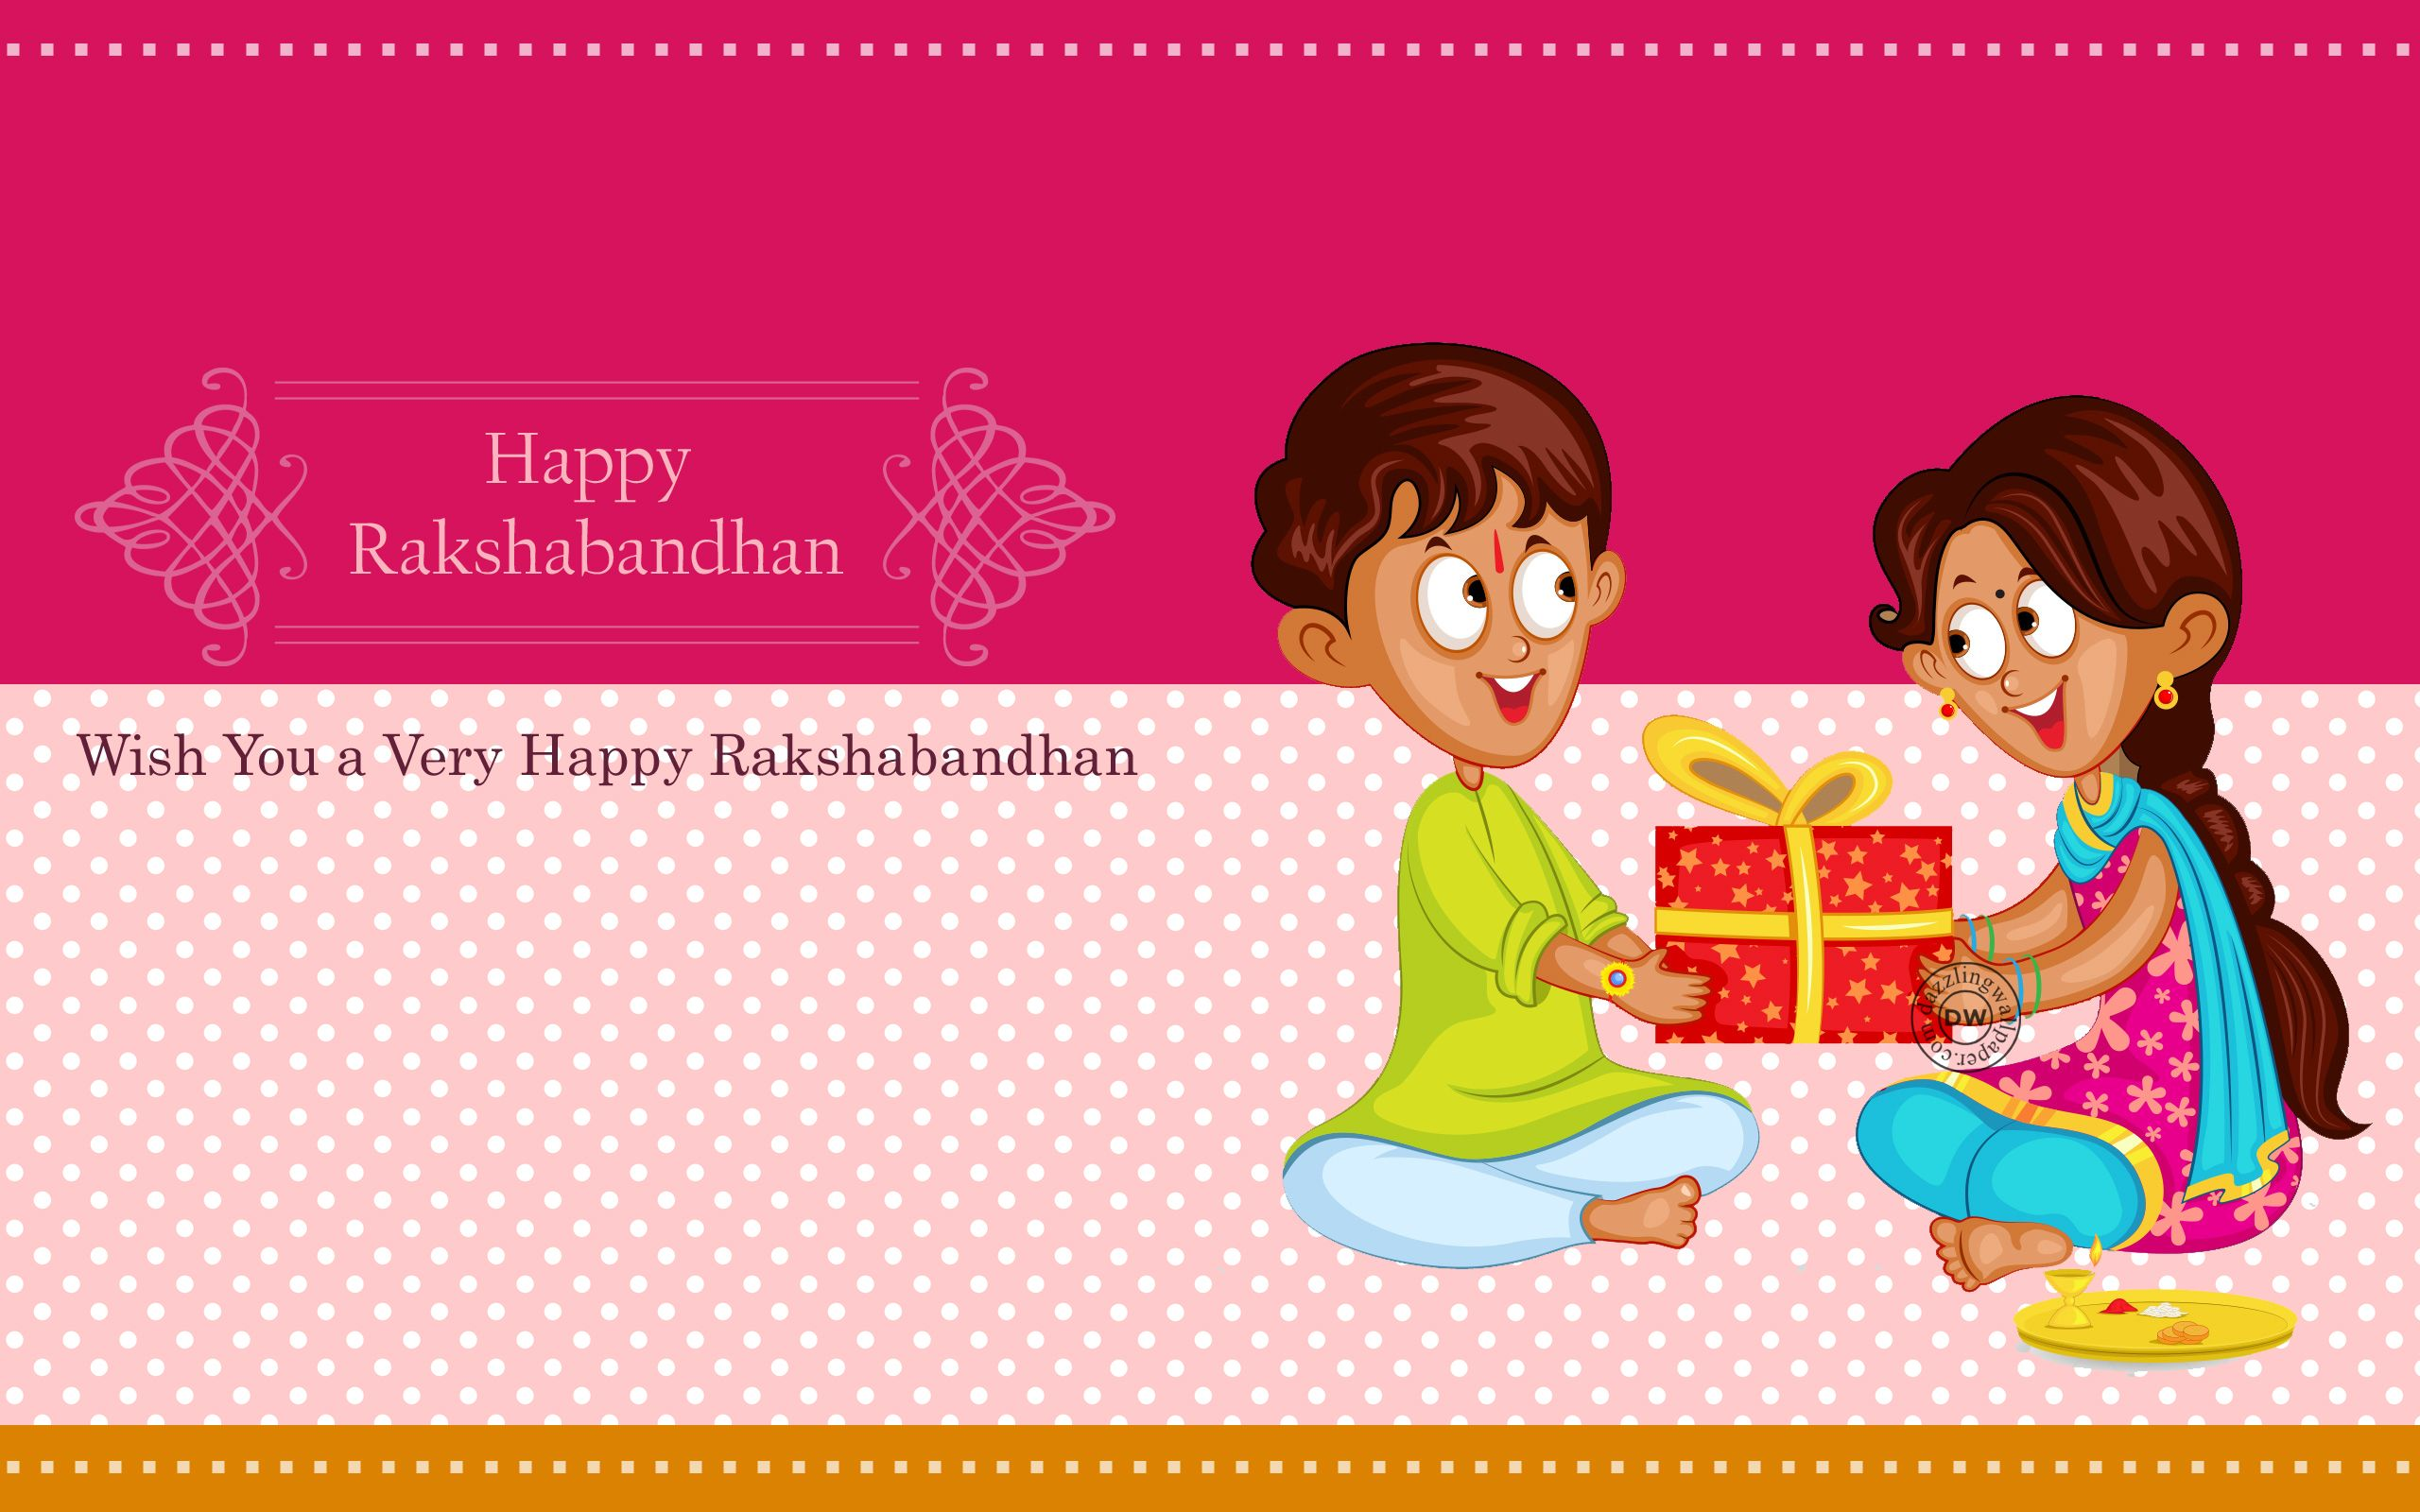 Happy rakshabandhan brother sister love hd wallpaper raksha happy rakshabandhan brother sister love hd wallpaper raksha bandhan brother sister rakhi kristyandbryce Image collections